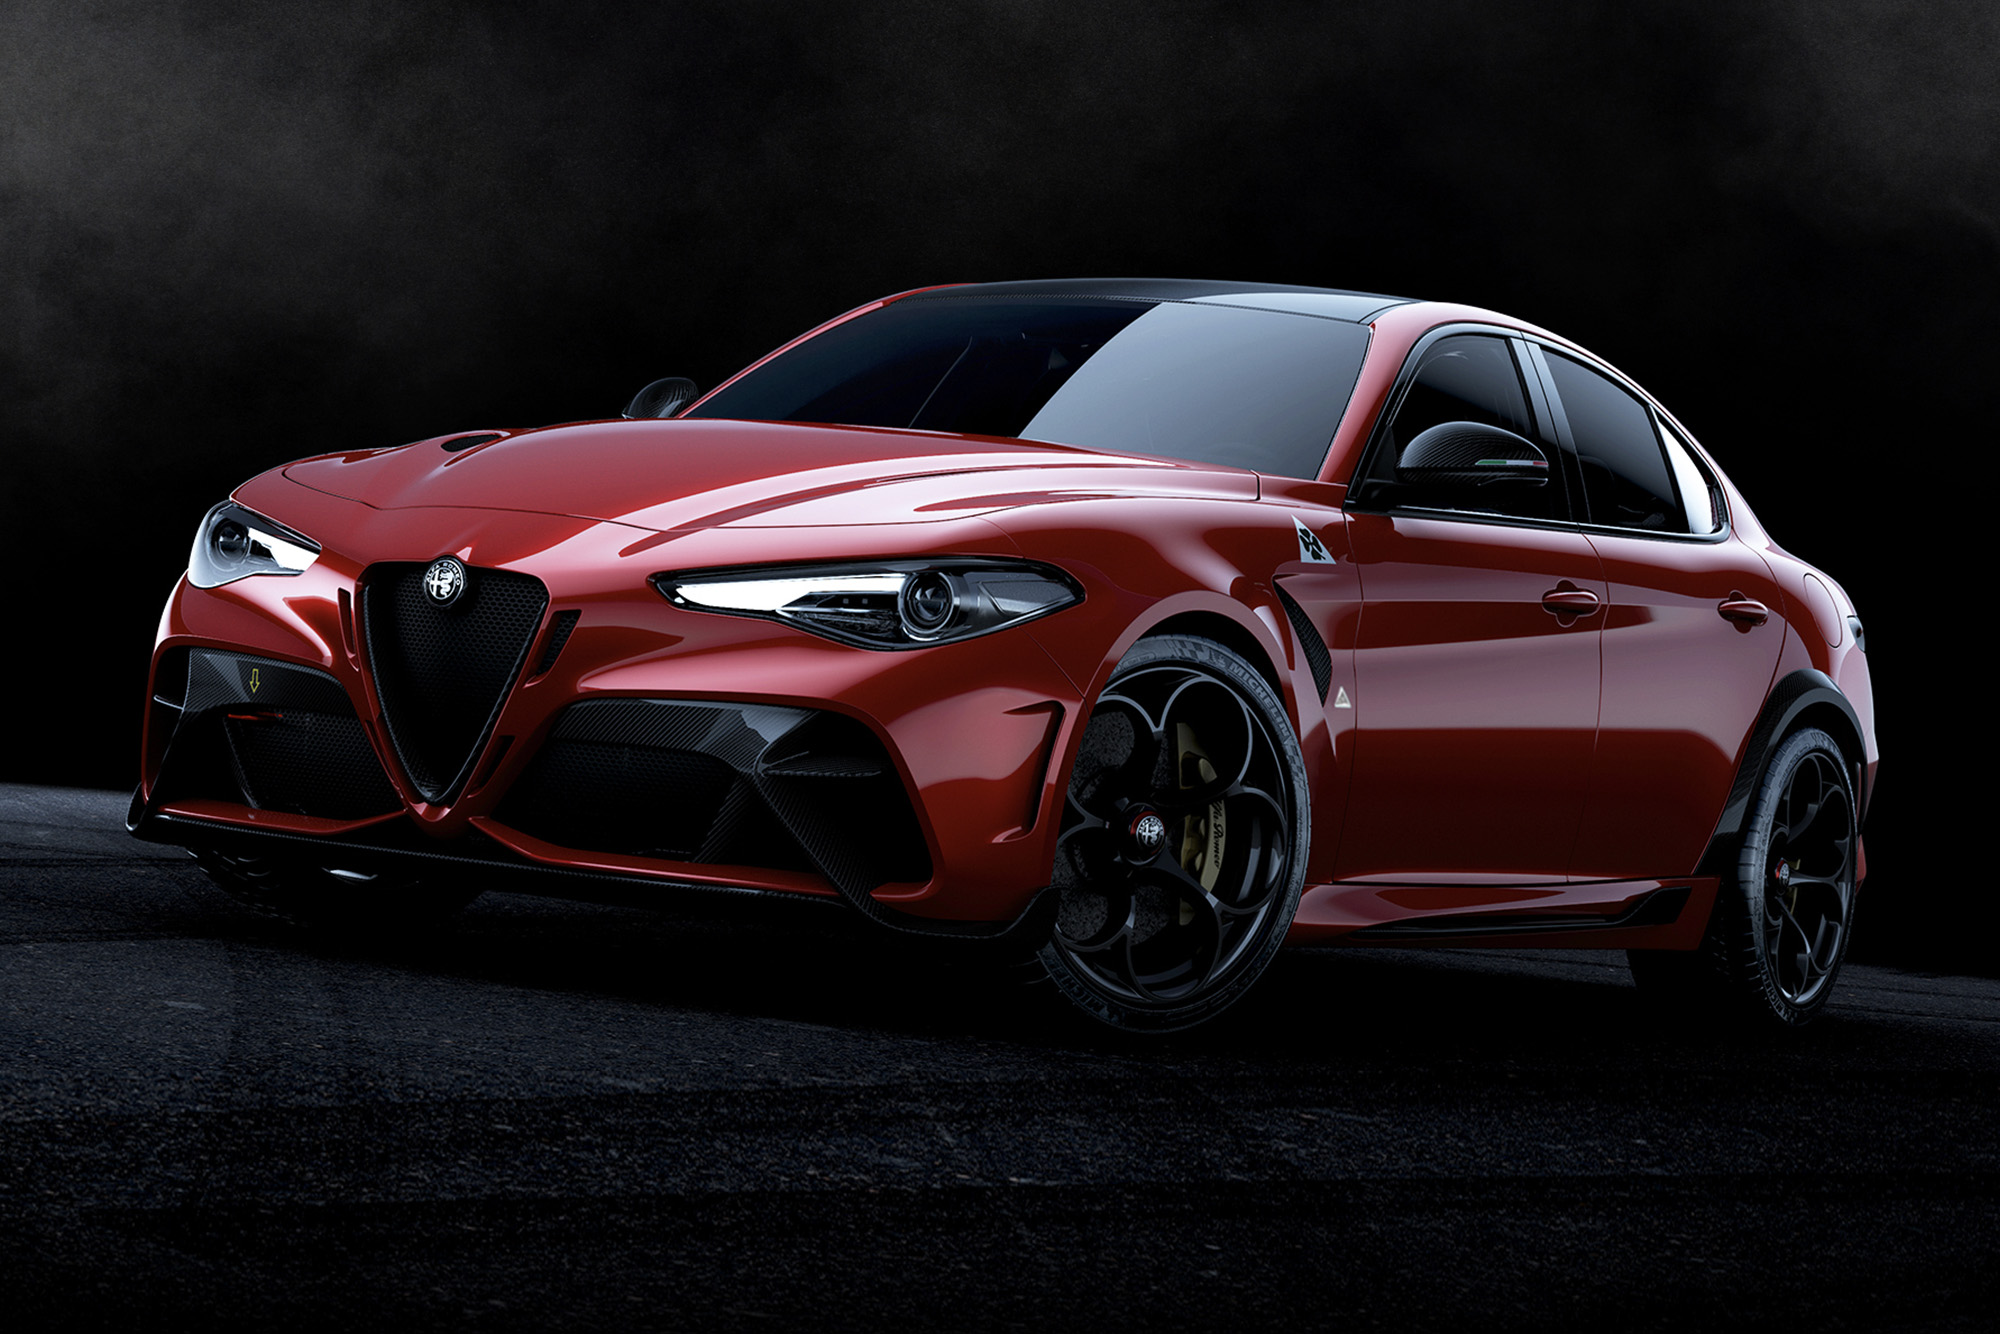 Alfa Romeo reveals limited edition Giulia GTA